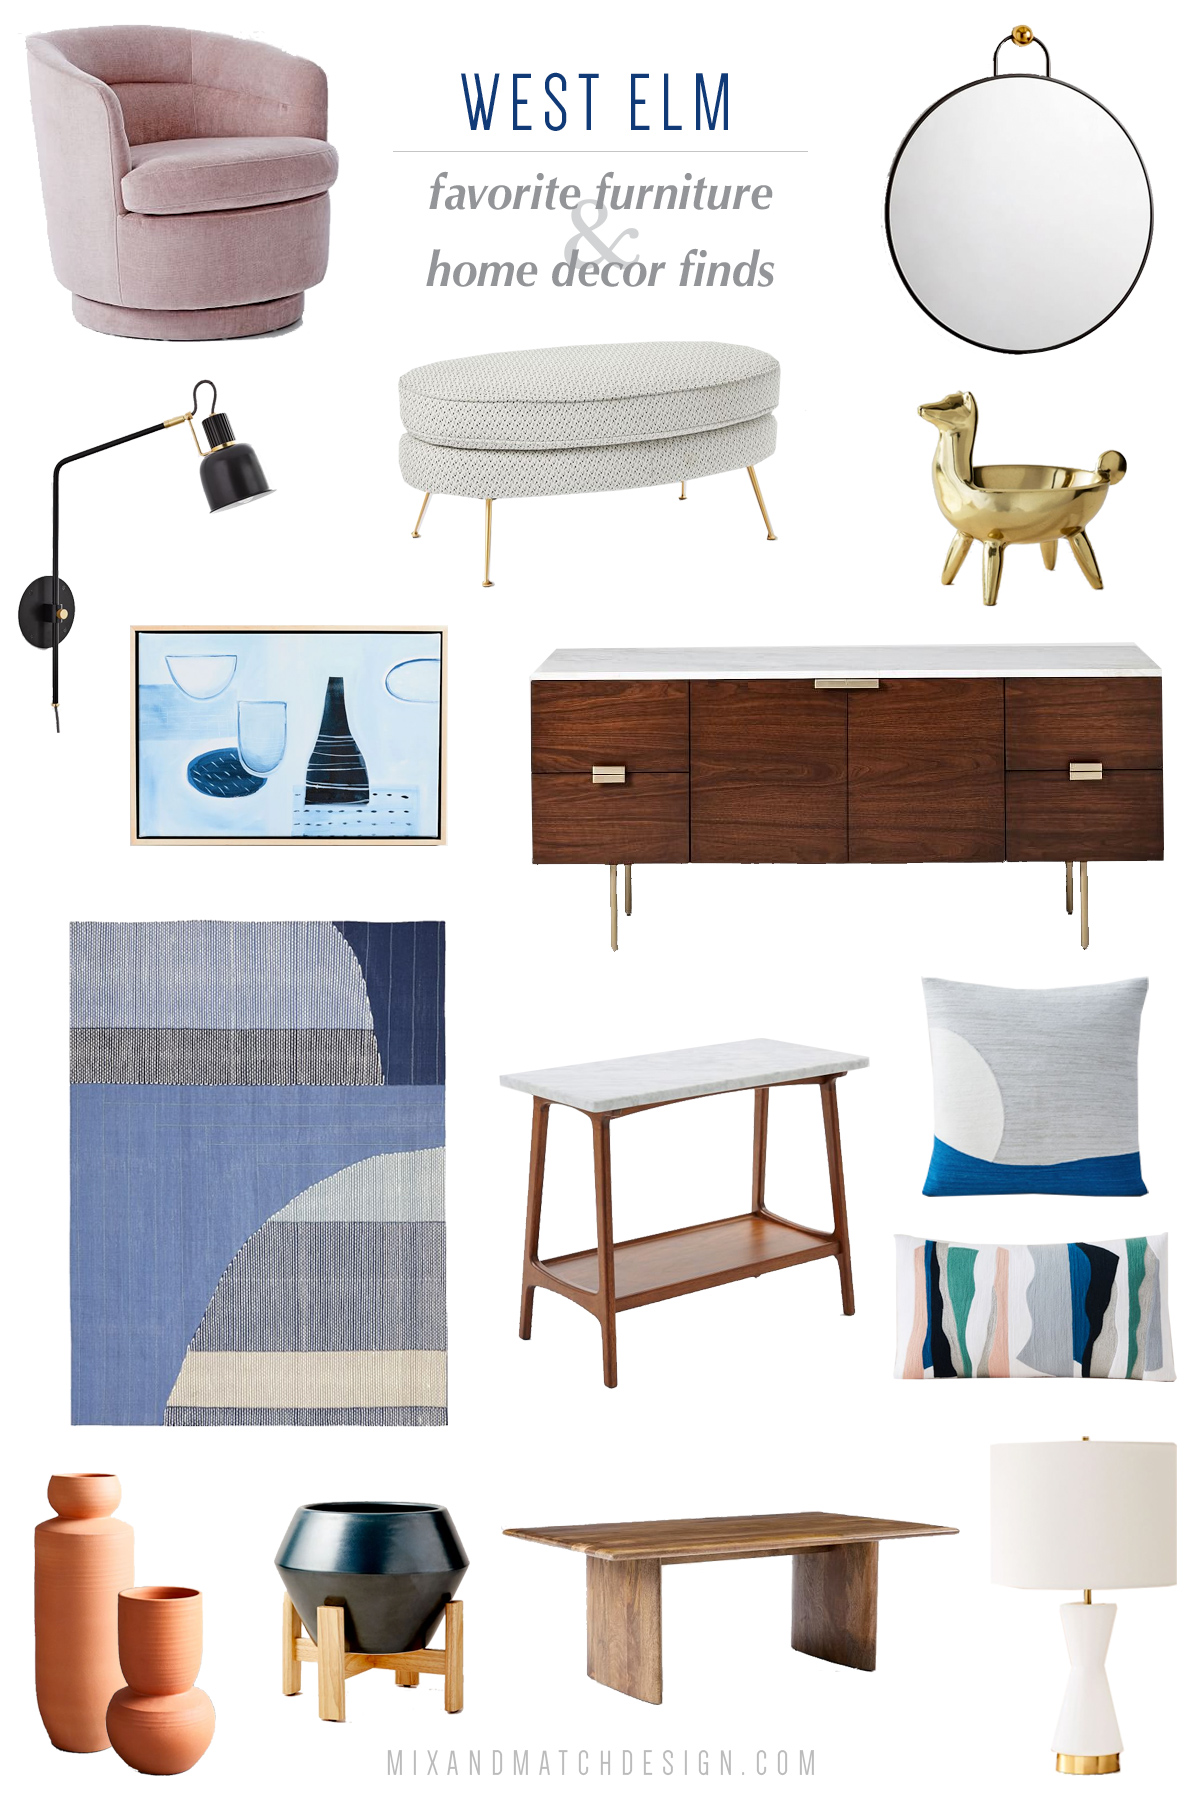 West Elm is one of my go-to places for affordable mid-century and modern furniture. They have a great selection of pieces for your living room, dining room, bedroom, and more! Come see my favorites on the blog.